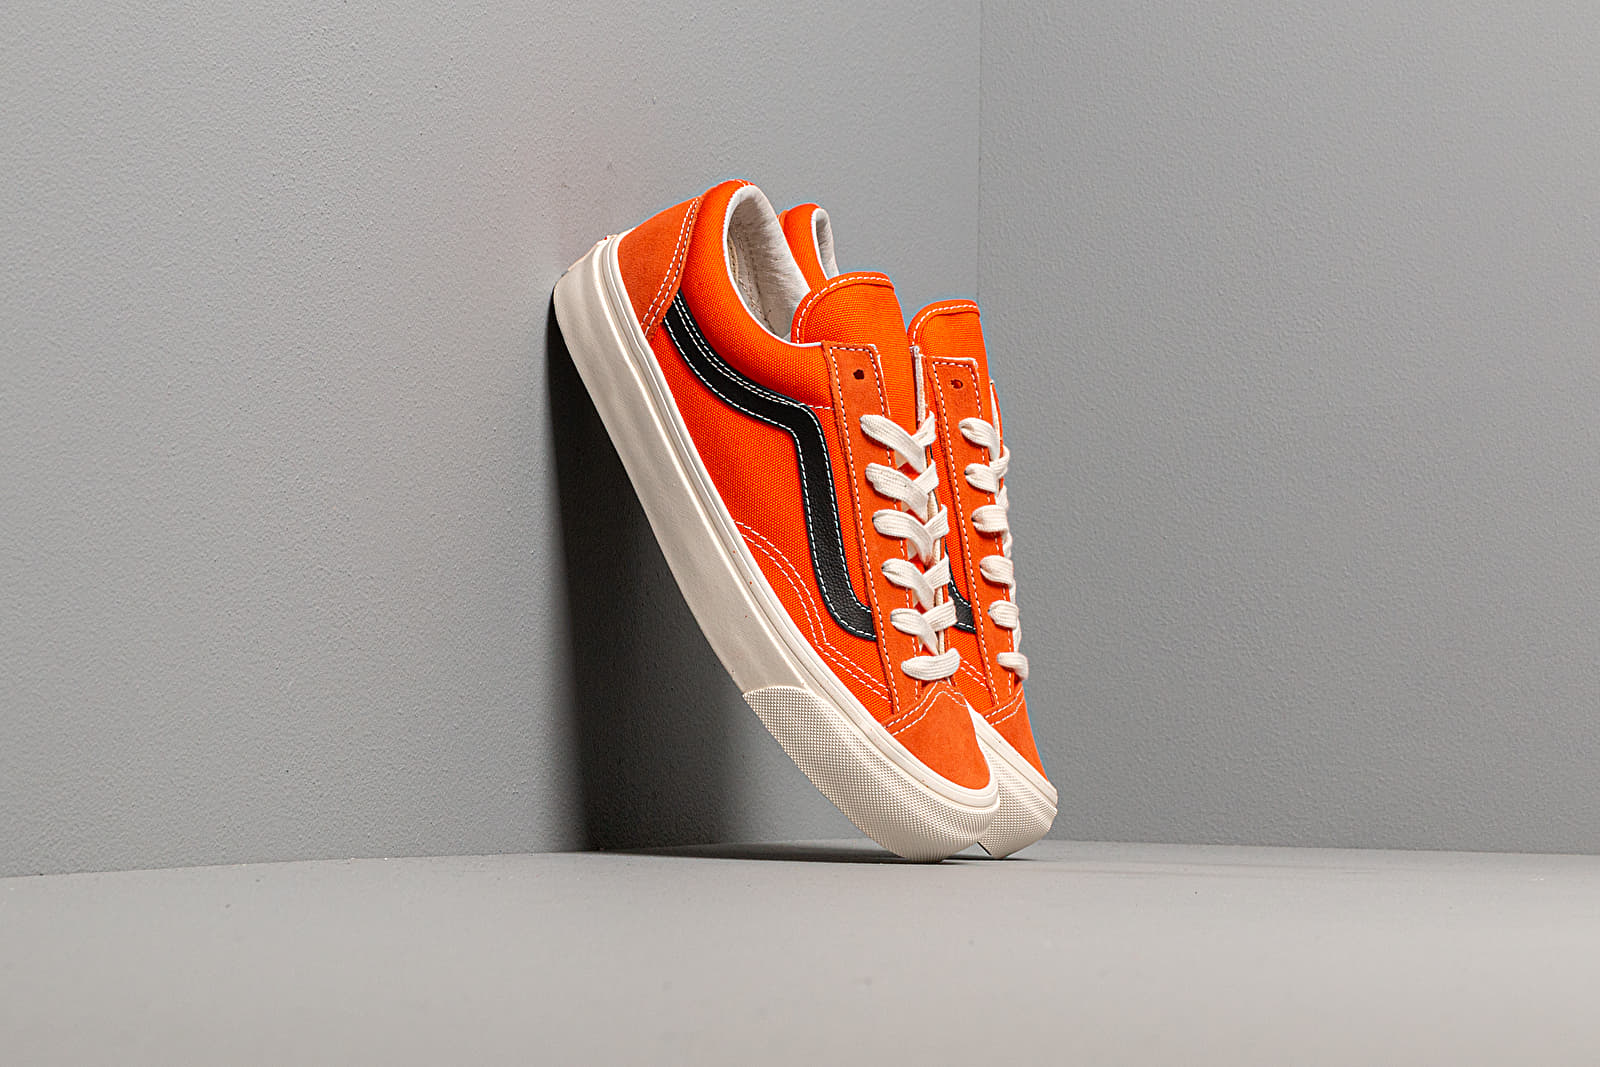 Muške tenisice Vans OG Style 36 LX (Suede/ Canvas) Red Orange/ Black